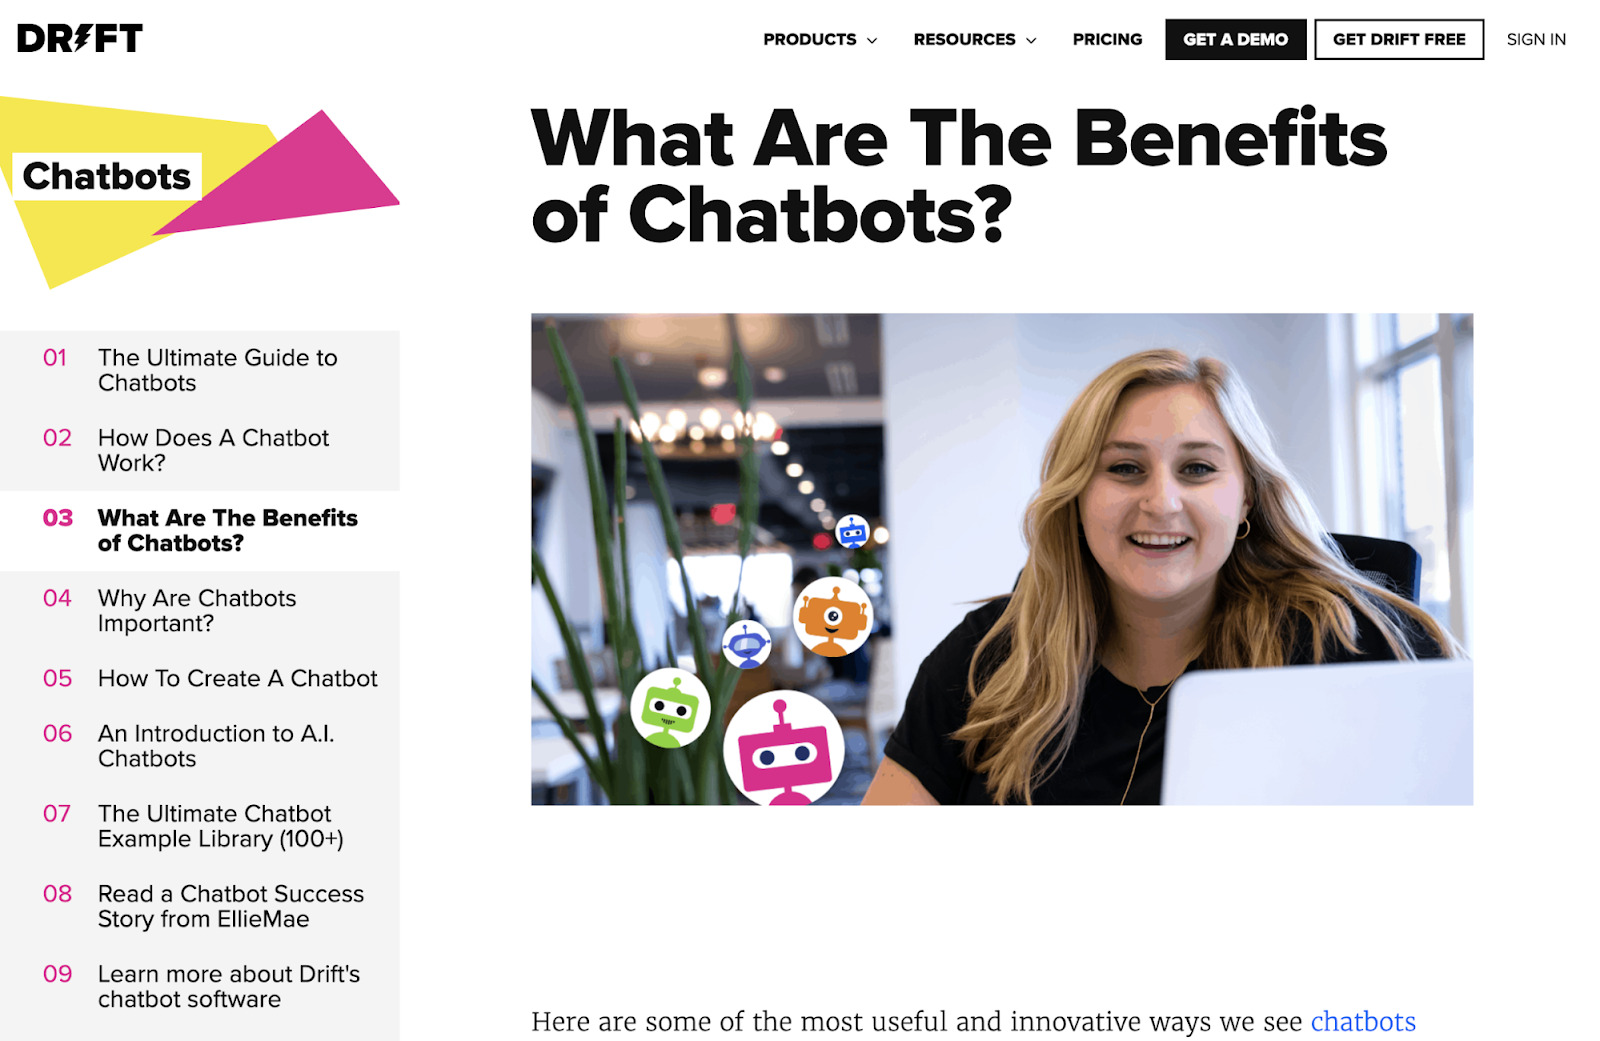 draft benefits of chatbots subpage